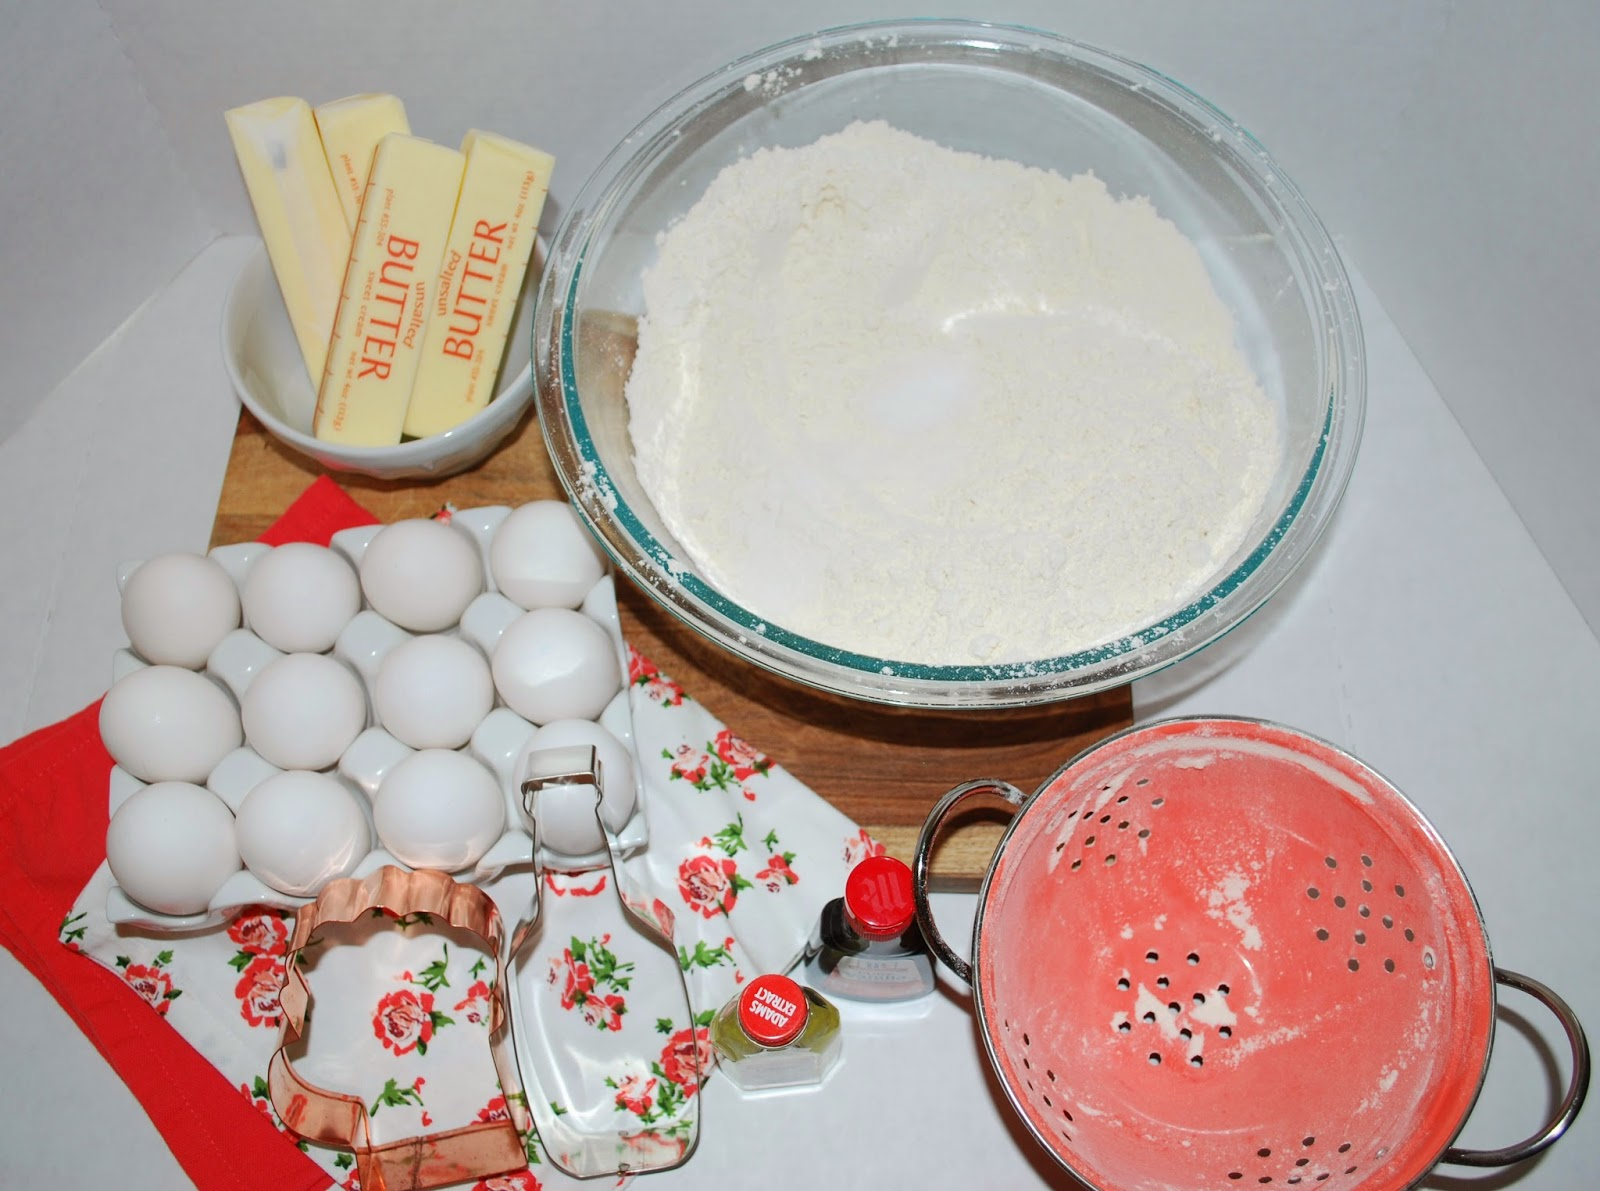 ingredients to bake sugar cookies